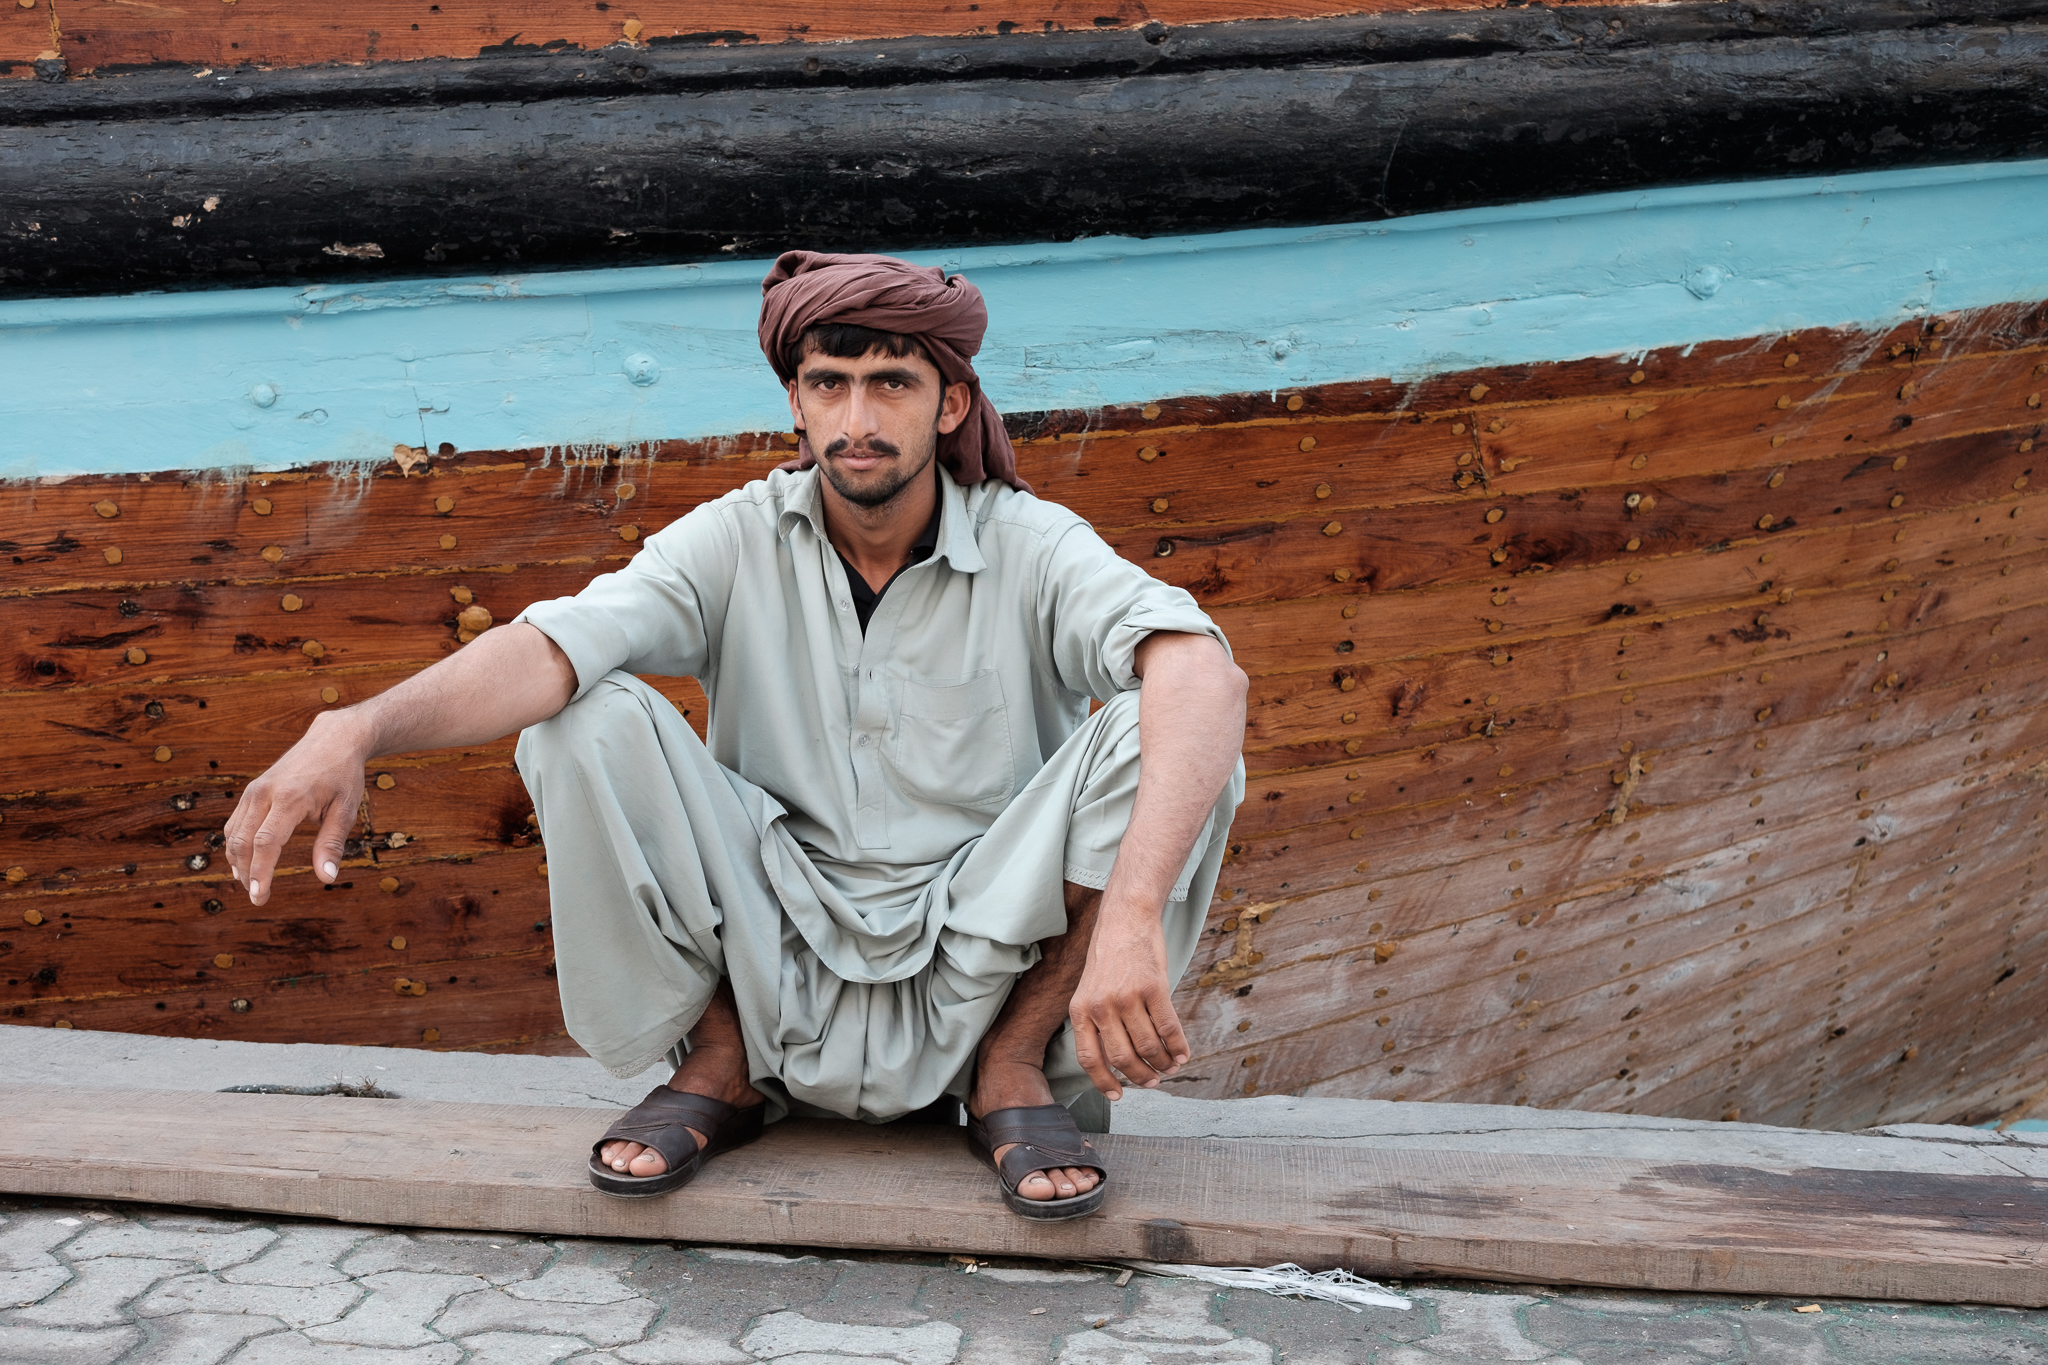 Young Pakastani man taking a break from loading goods on to a Cargo ship heading for Iran